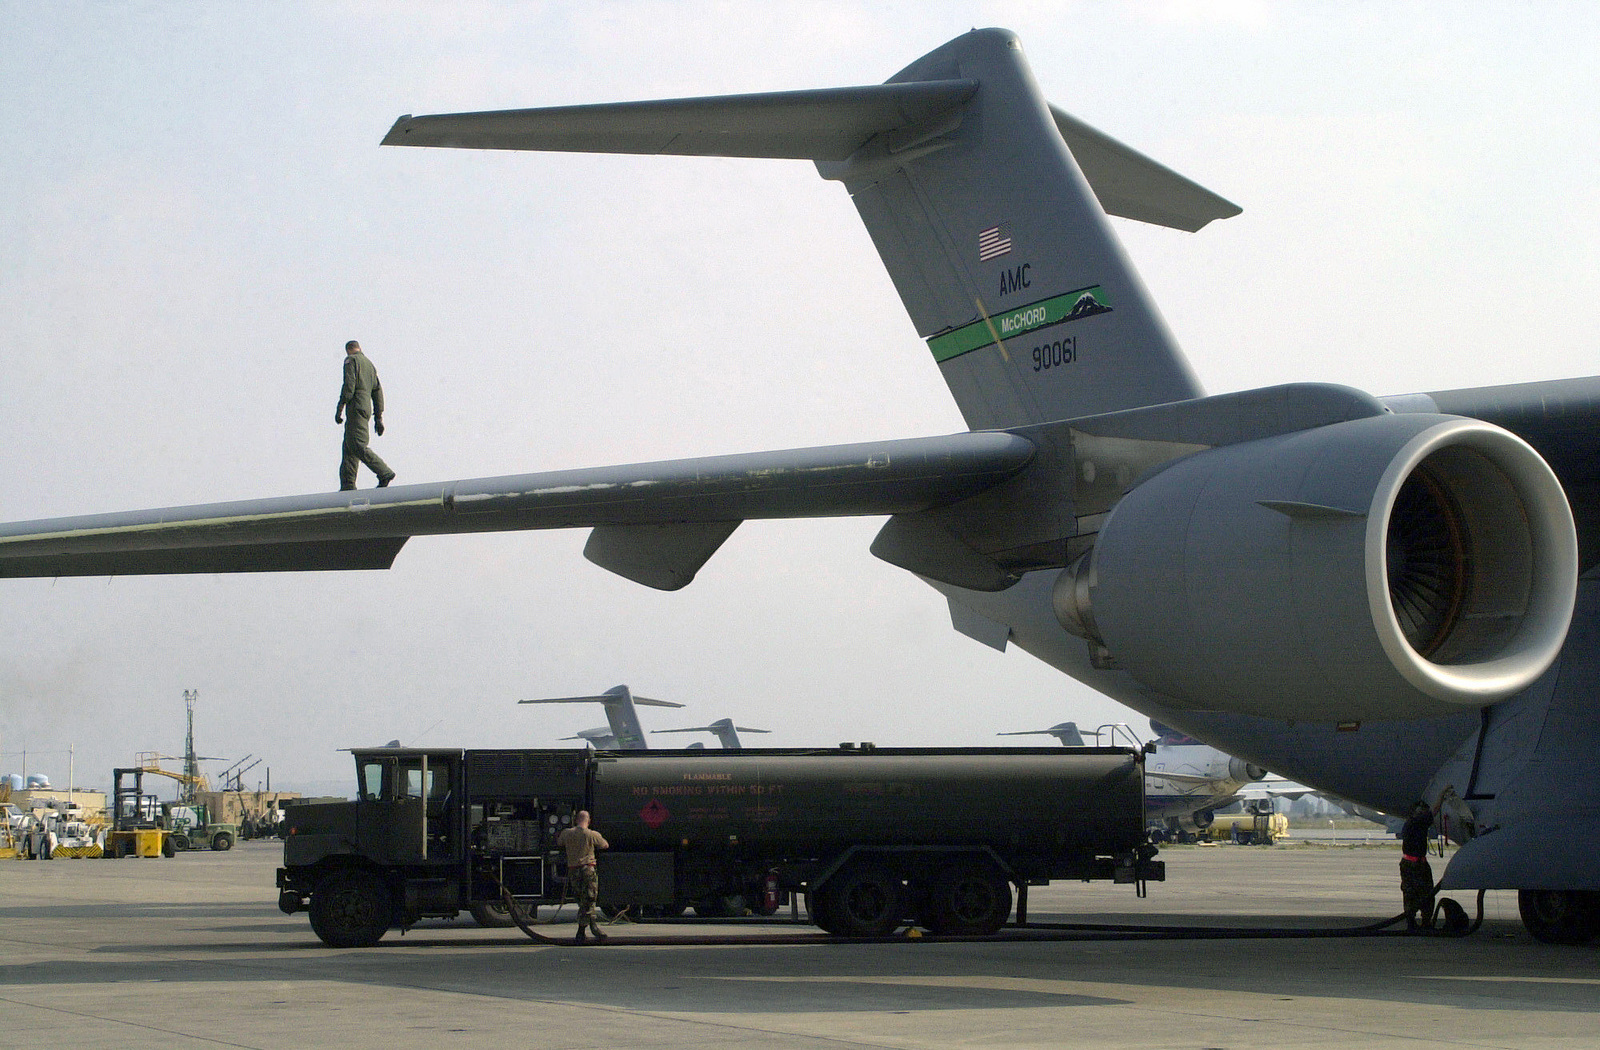 An R-11 fuel truck refuels C-17A Globemaster III on the ramp at Naval Air Station (NAS) Sigonella, Italy, during Operation ENDURING FREEDOM. In response to the terrorist attacks on September 11, 2001 at the New York World Trade Center and the Pentagon, President George W. Bush initiated Operation ENDURING FREEDOM in support of the Global War on Terrorism (GWOT), fighting terrorism abroad